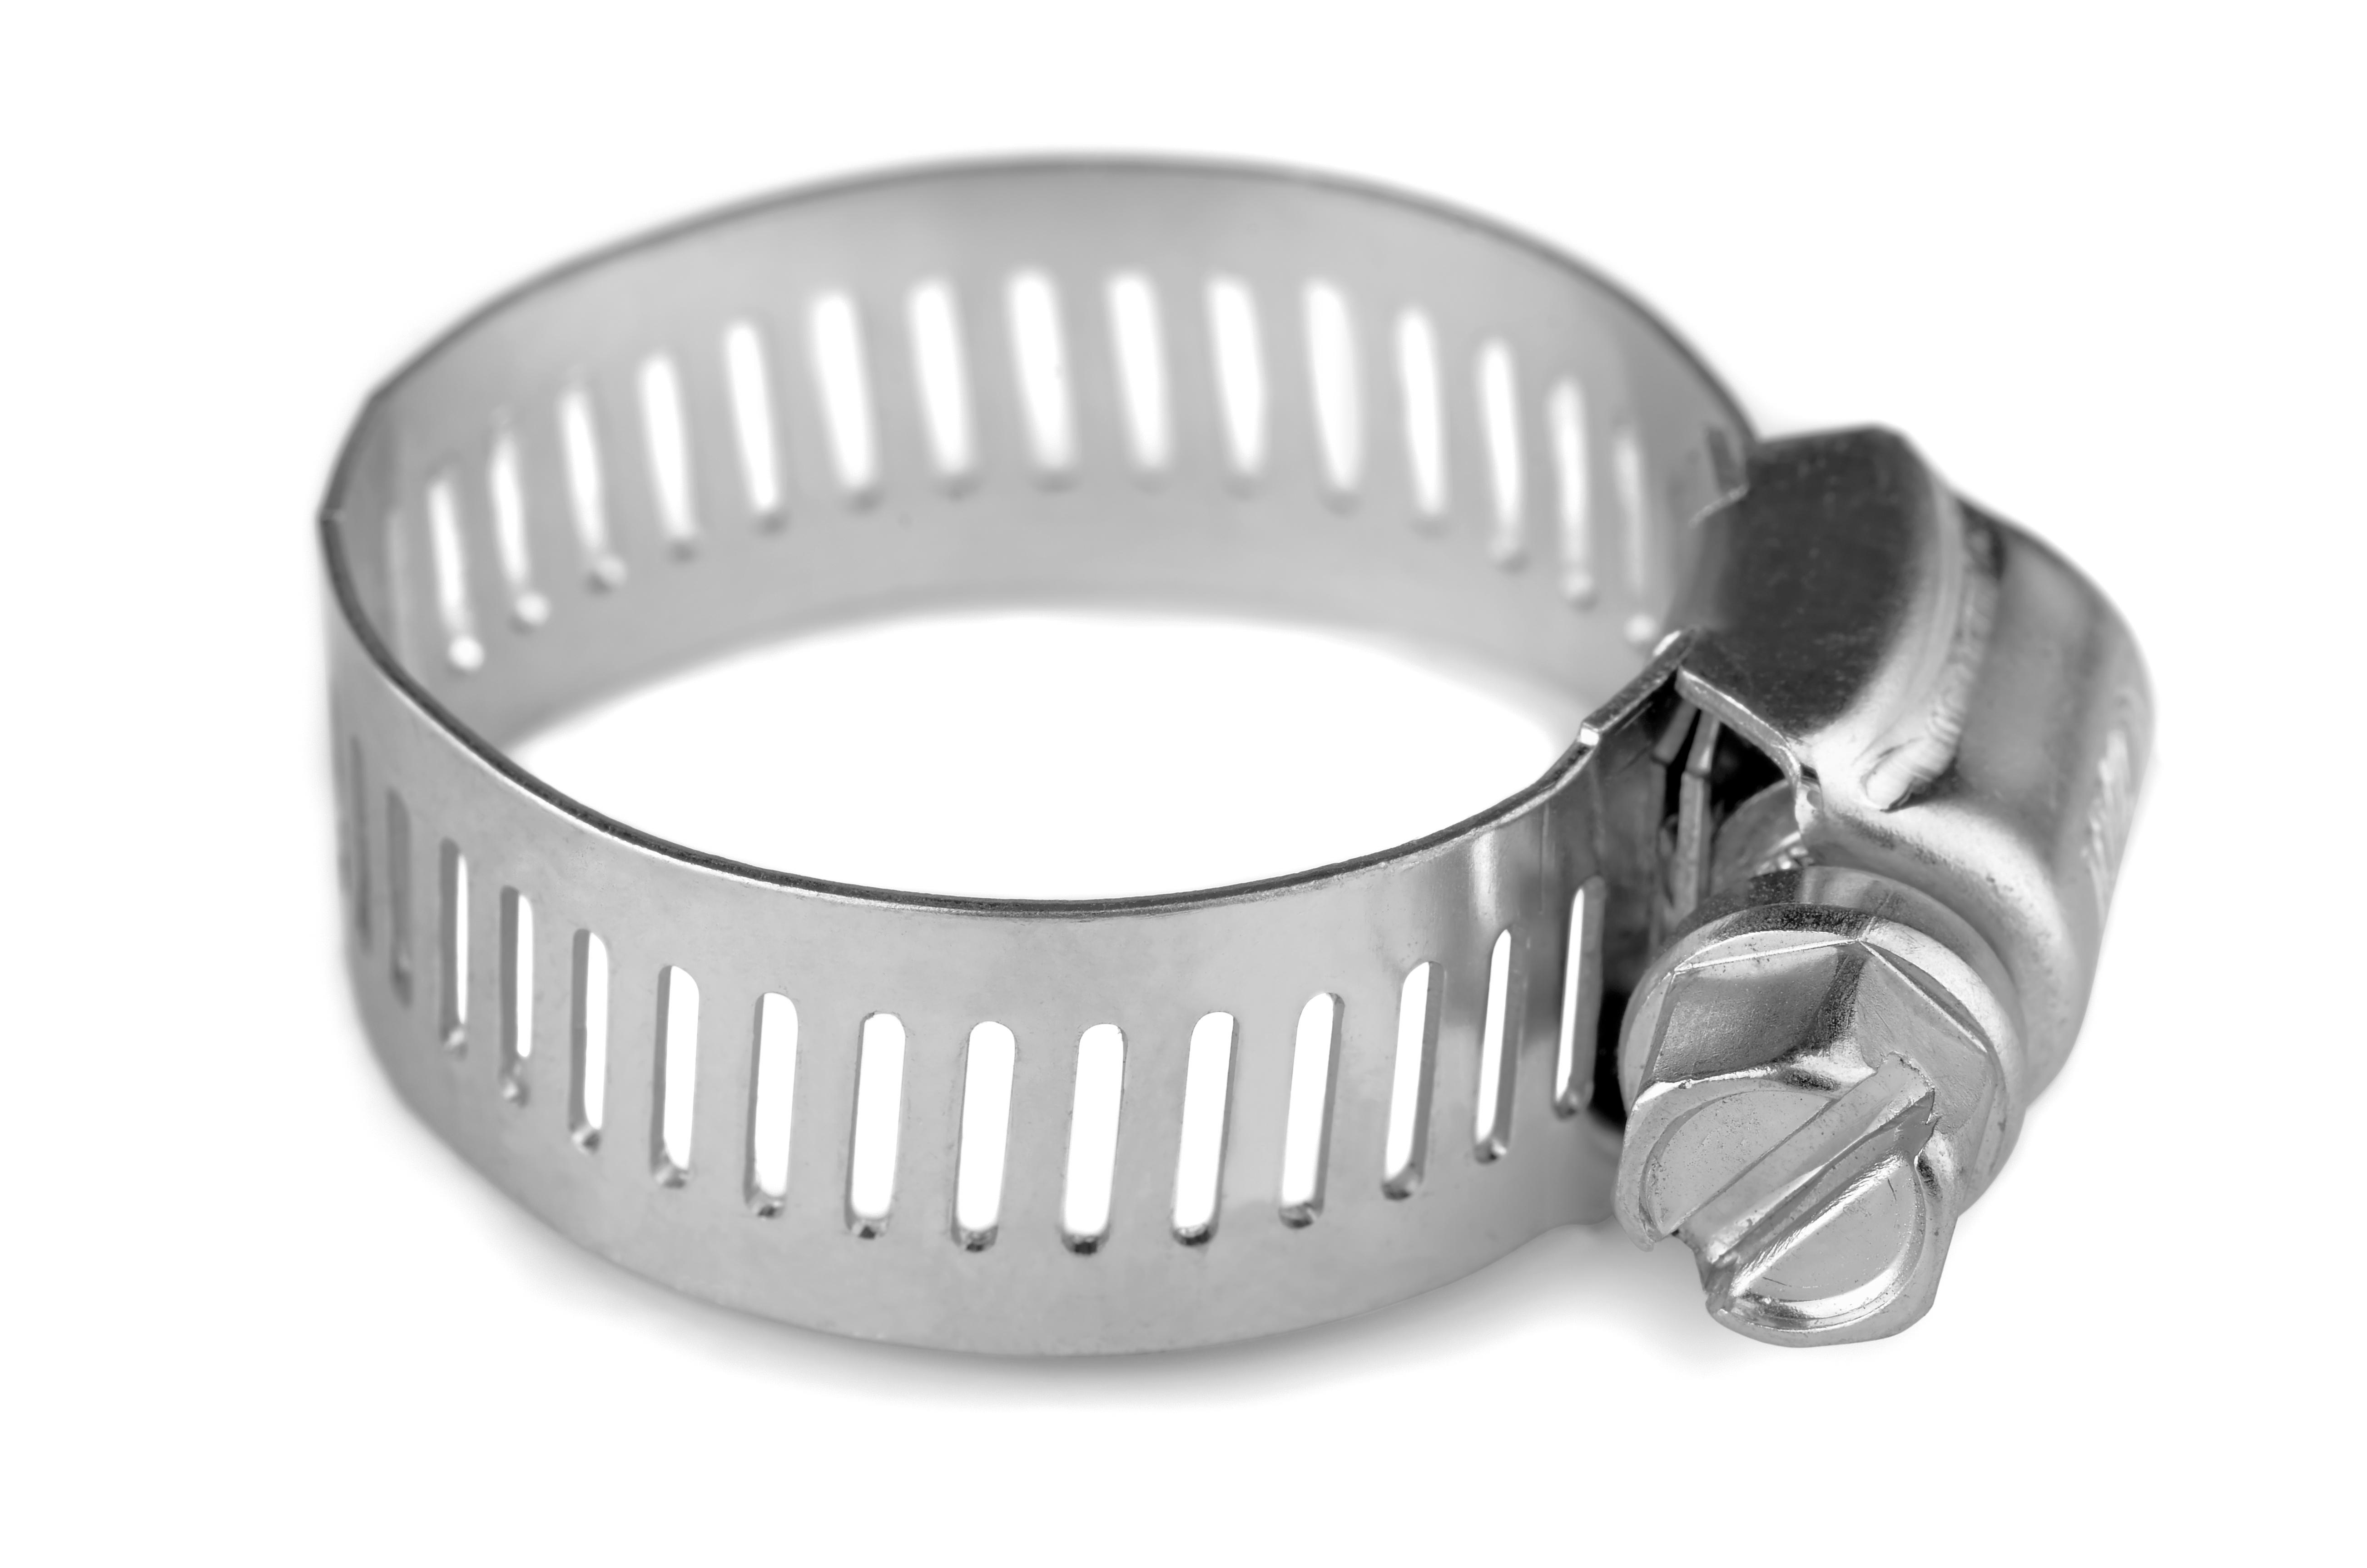 an image of a worm-geared hose clamp